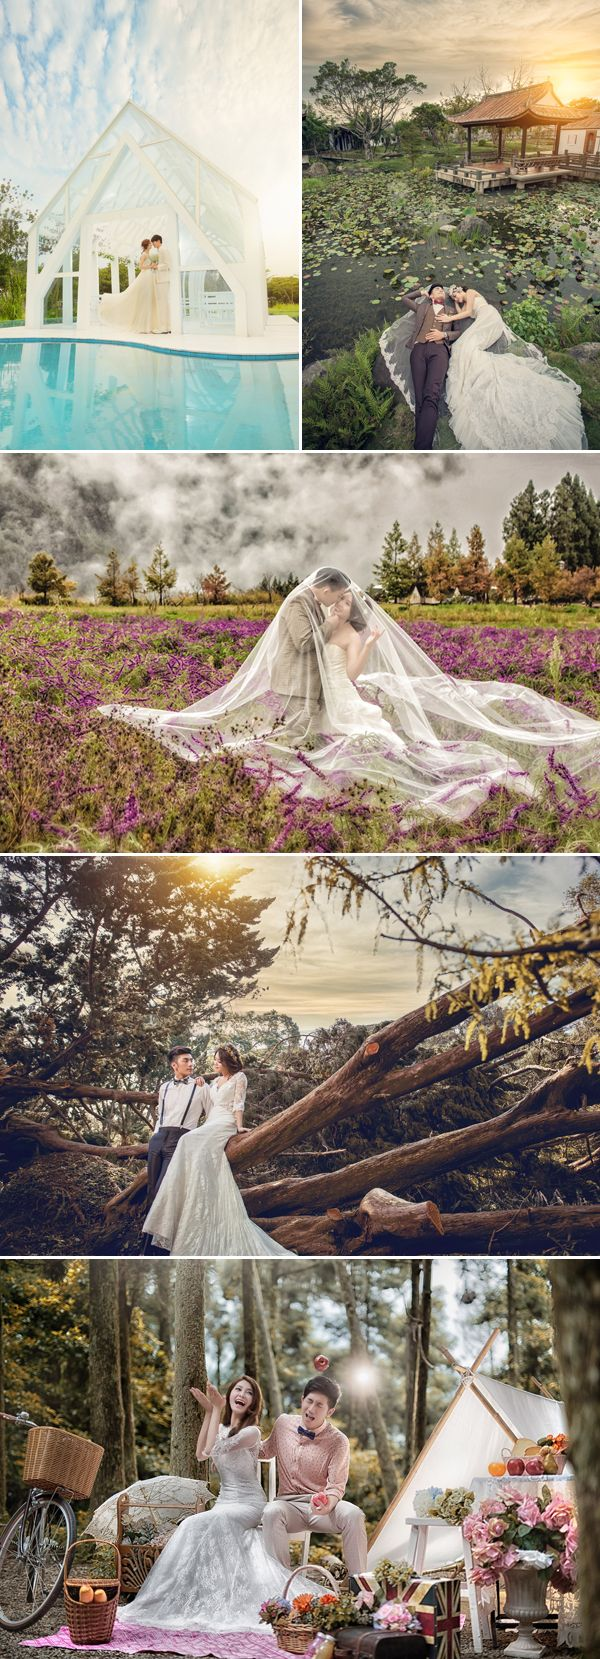 If you are a stylish, adventurous couple who would love to try out different concepts for your pre-wedding photo, we've got great news for you! Taiwan based bridal shopRoyal Wed is offering a special pre-wedding package exclusive to Praise Wedding readers that includes the most gorgeous gowns, stylish makeup and hairdo, and both studio and …